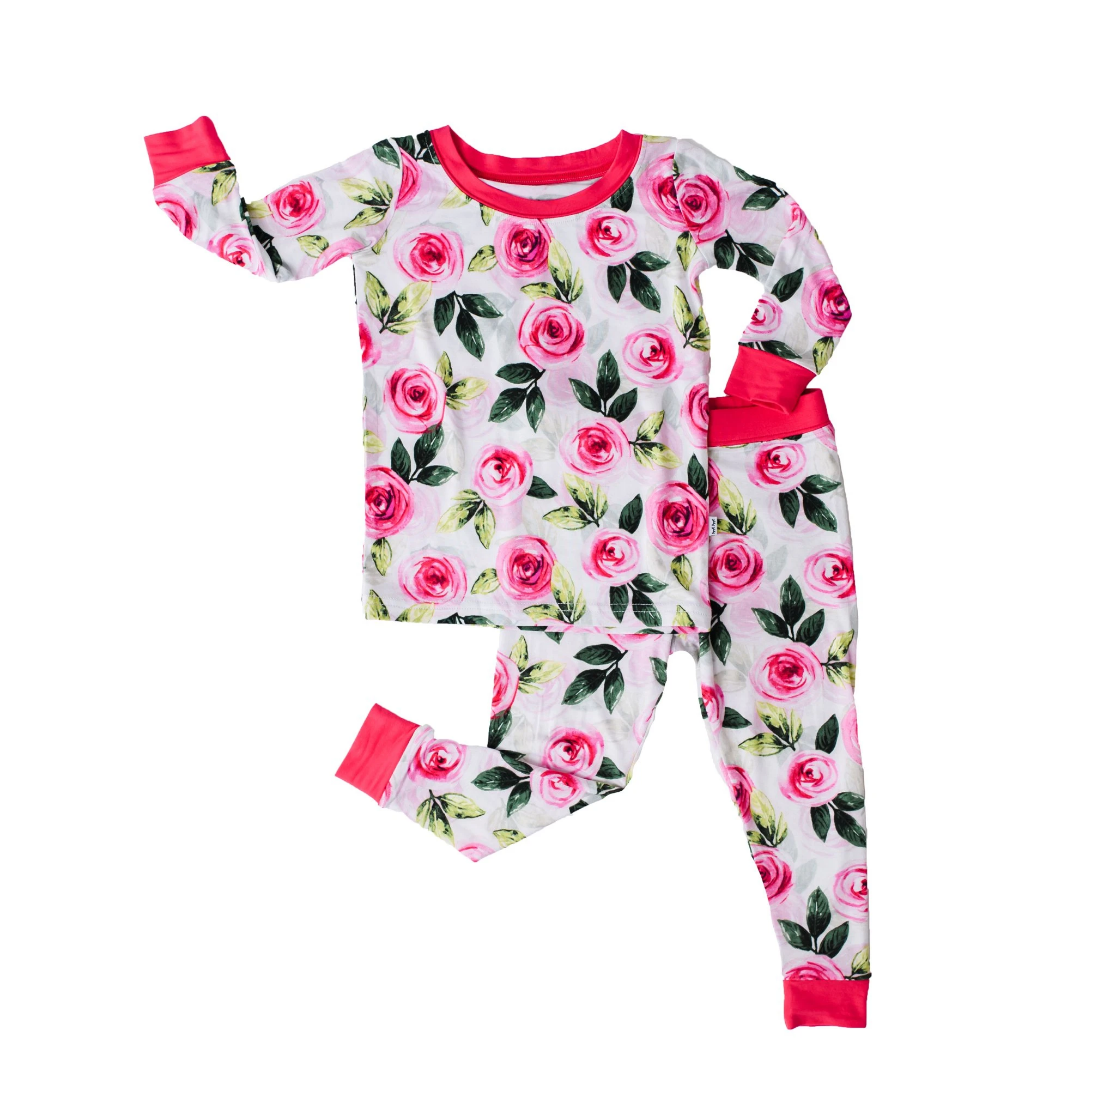 Roses - Two-Piece Bamboo Pajama Set